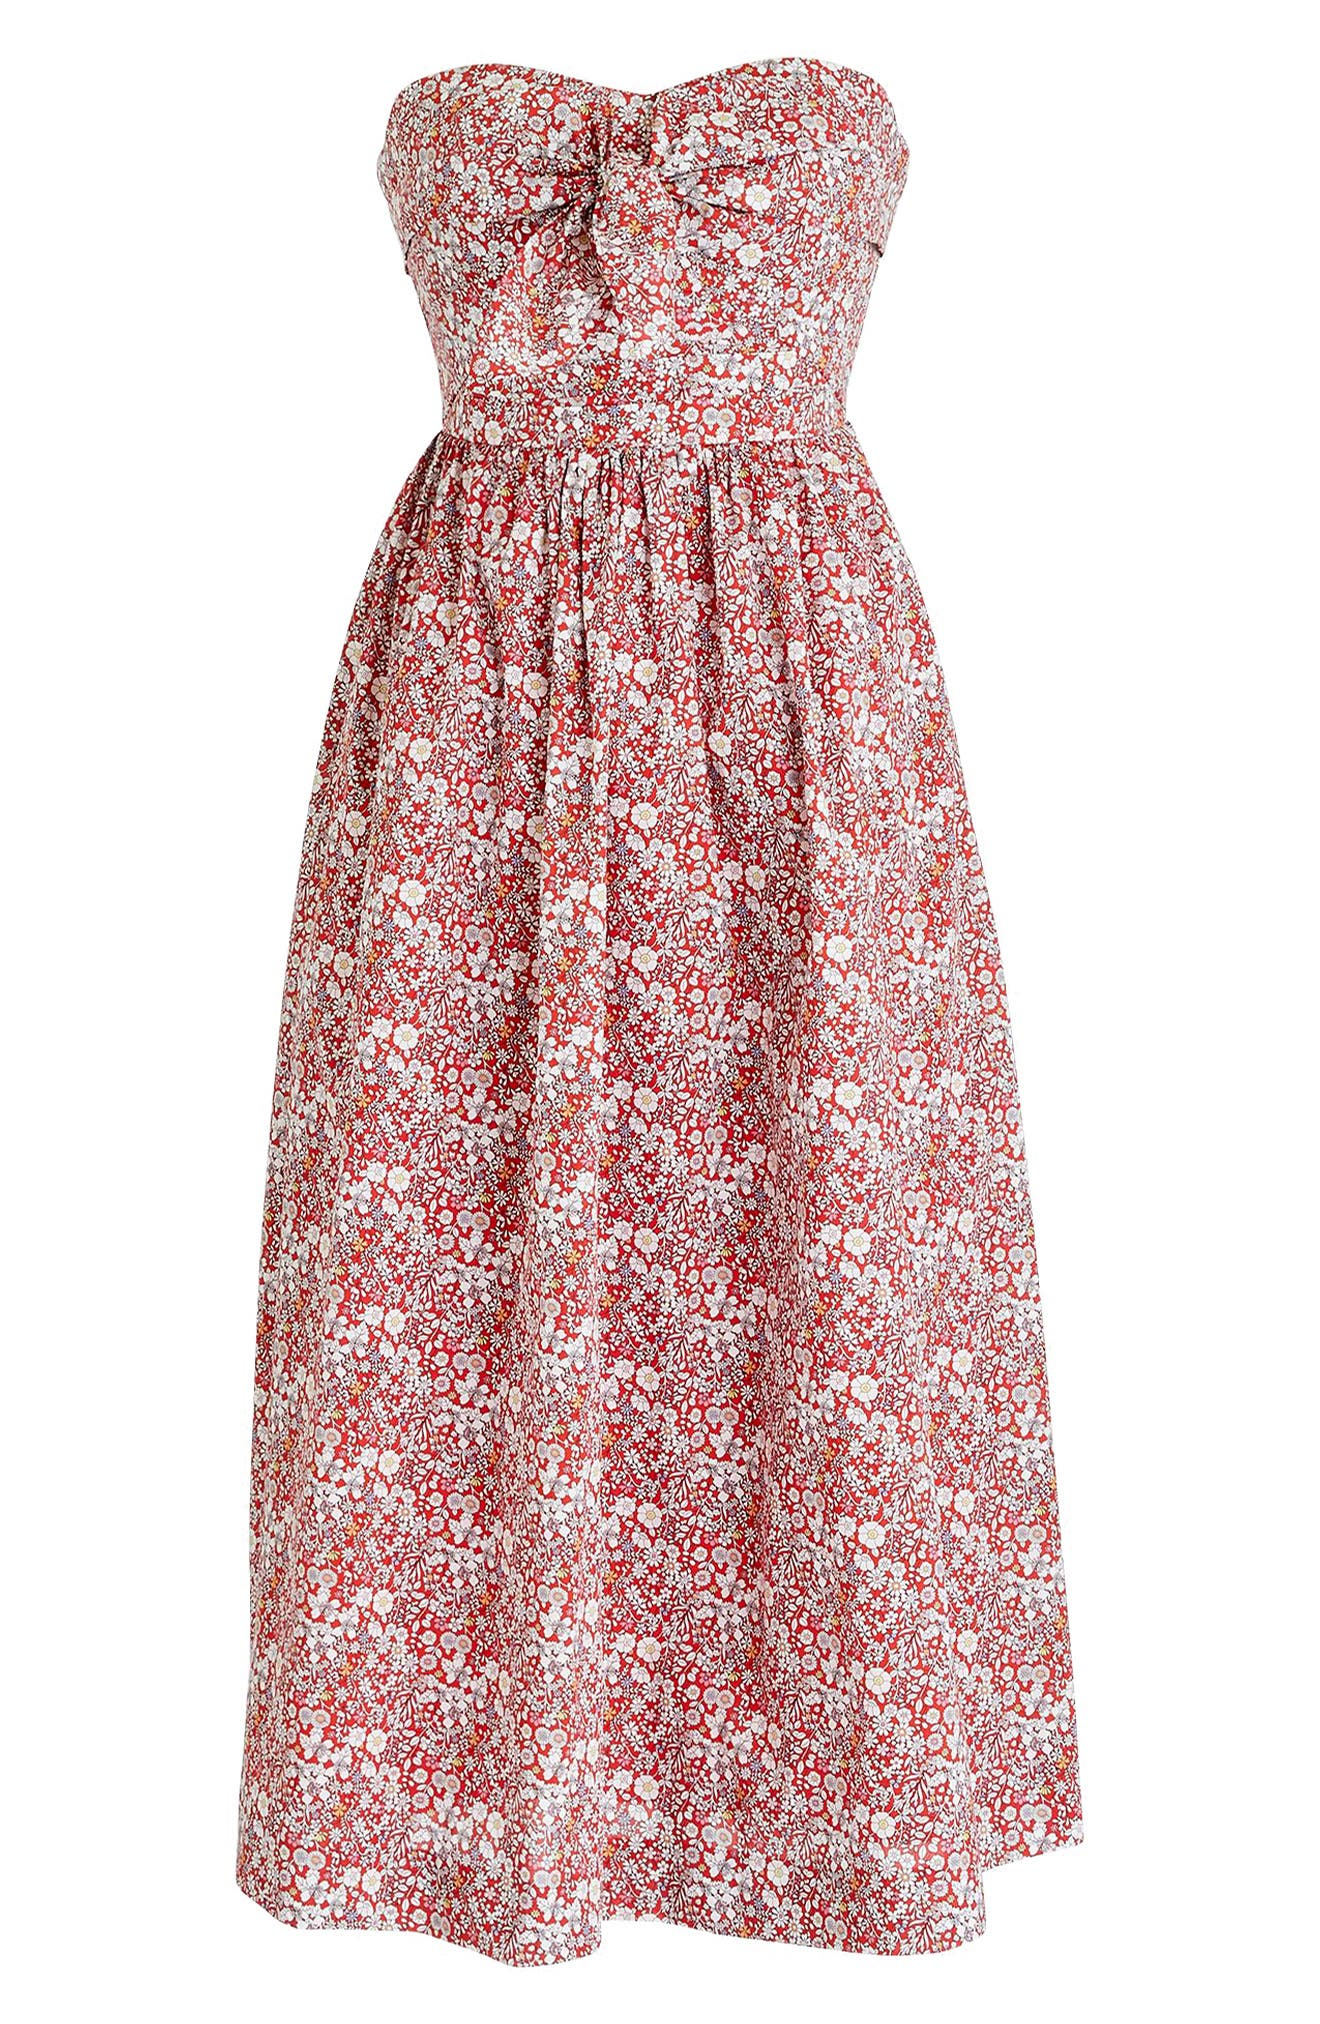 Liberty Tie Front Strapless Dress,                             Alternate thumbnail 4, color,                             Cherry Multi